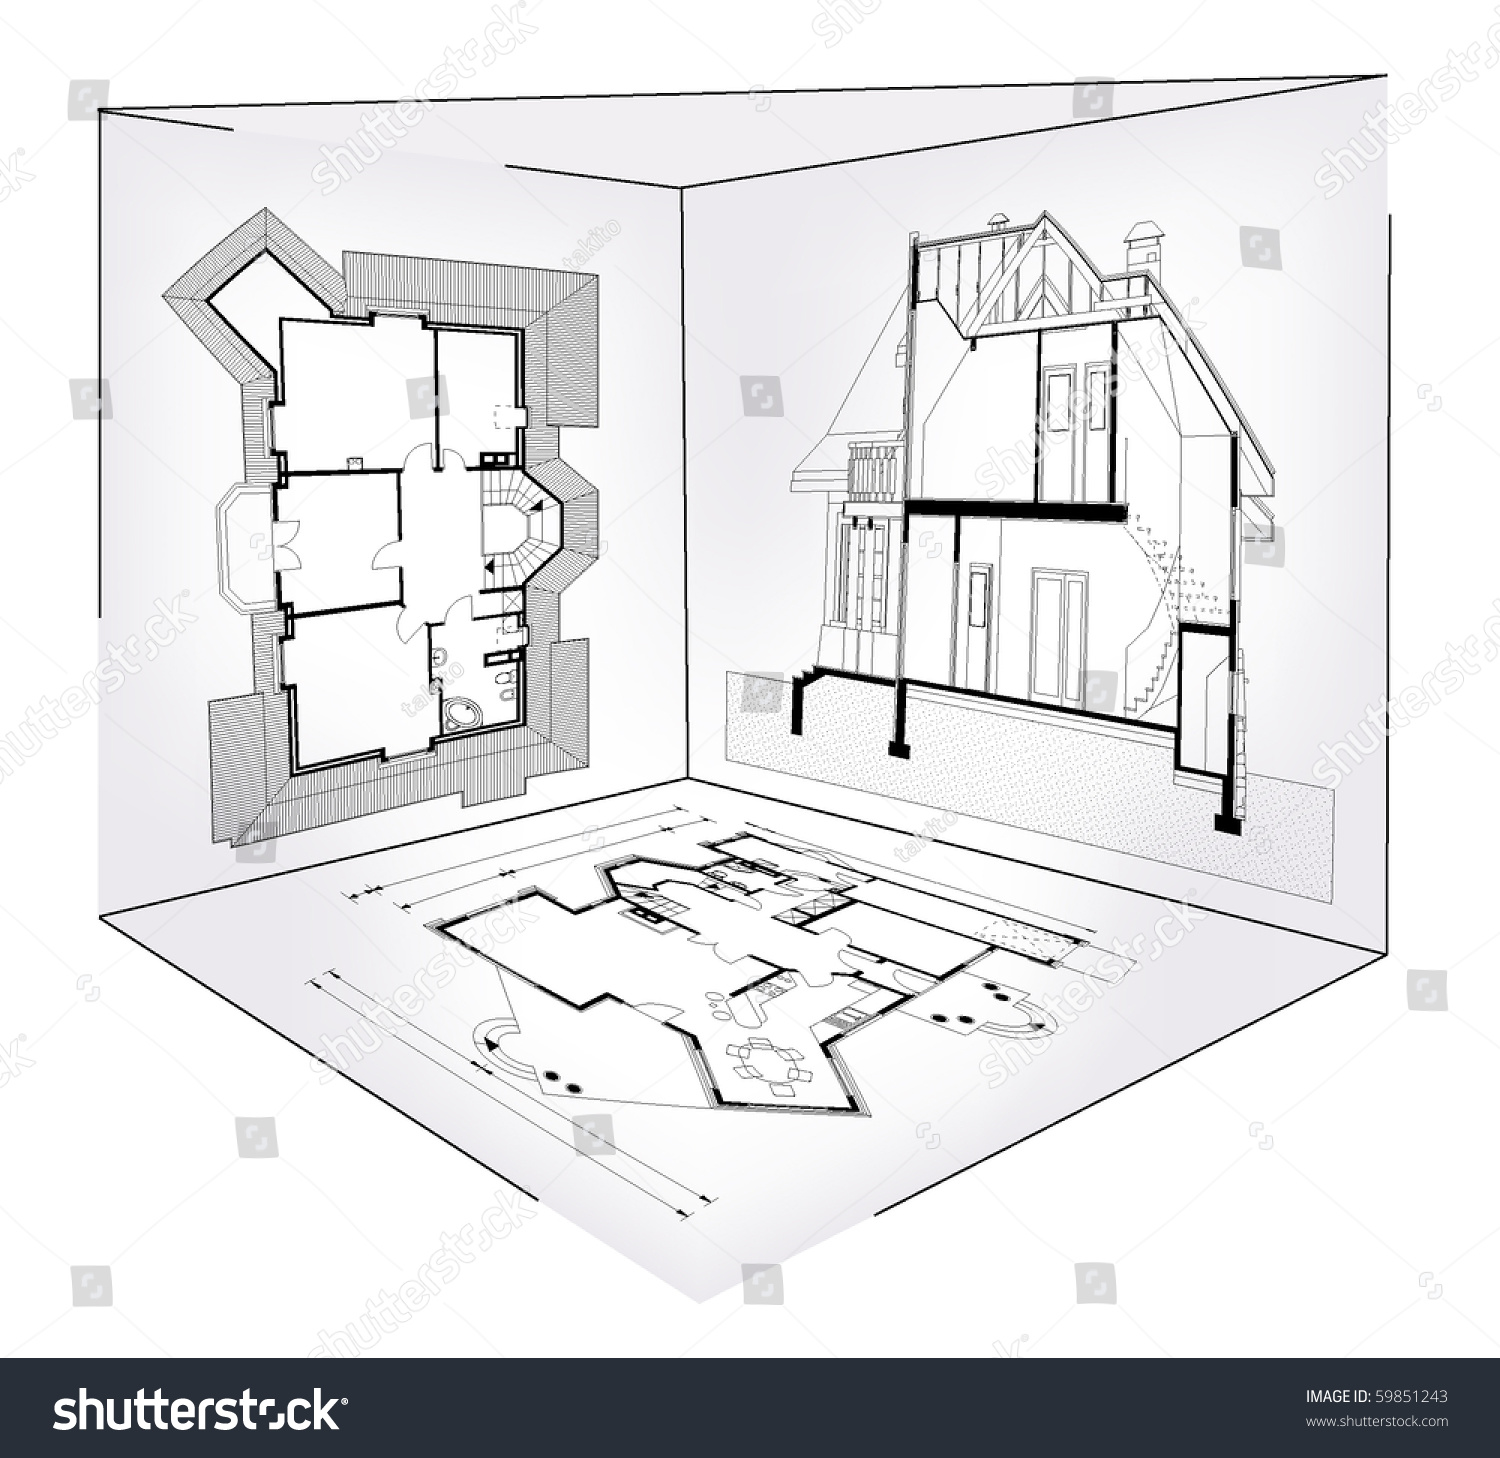 Vector illustration of abstract house blueprint inside 3d section